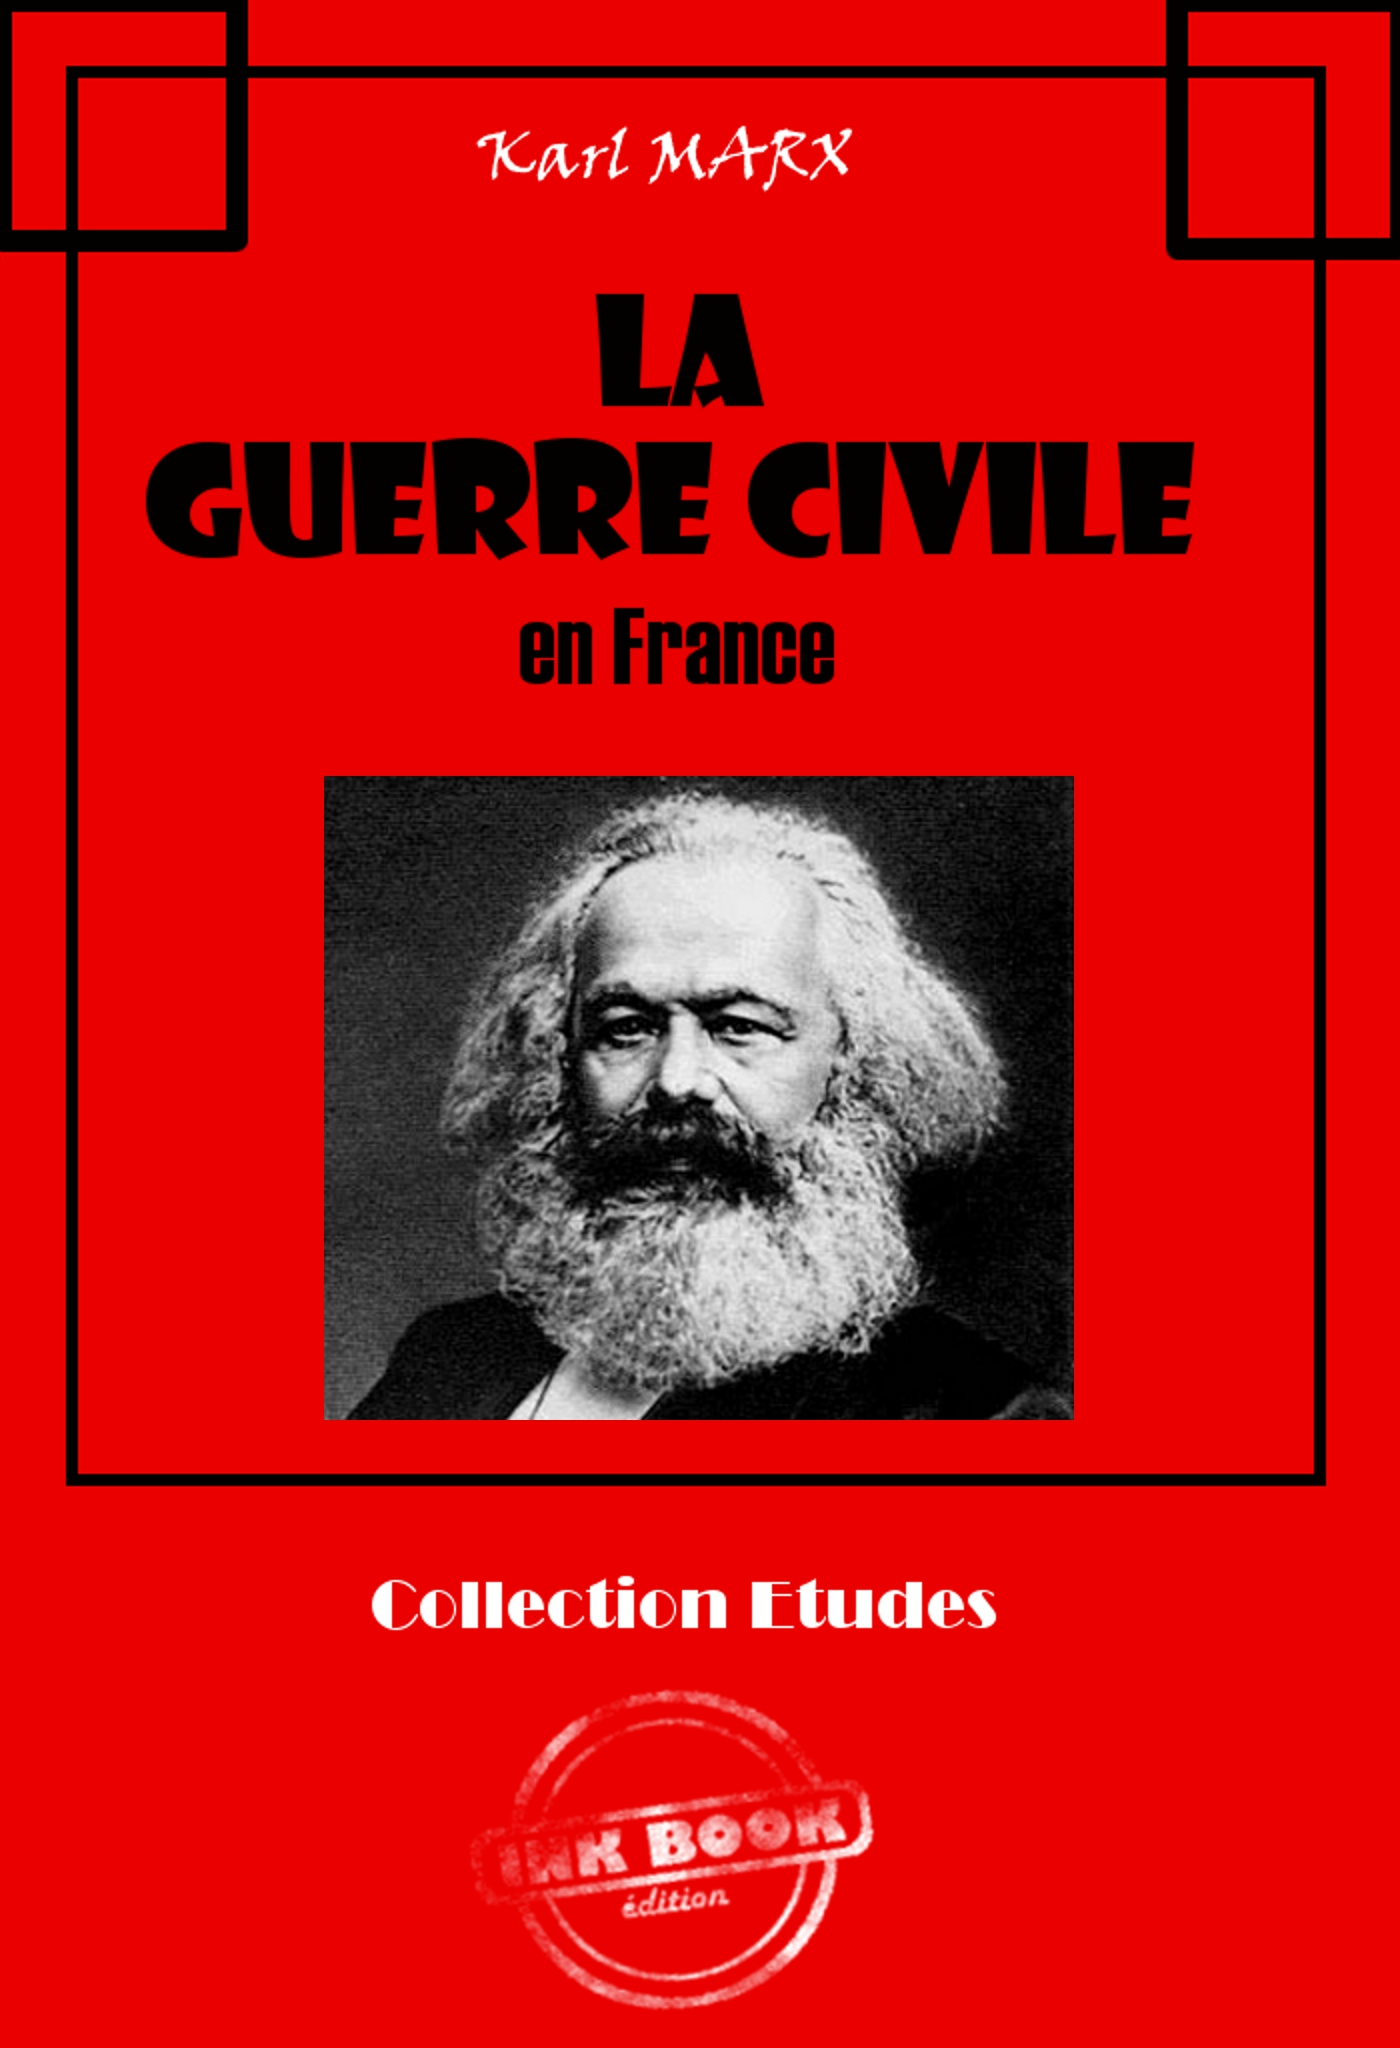 La Guerre Civile en France (Avec introduction d'Engels et lettres de Marx et d'Engels sur la Commune de Paris)